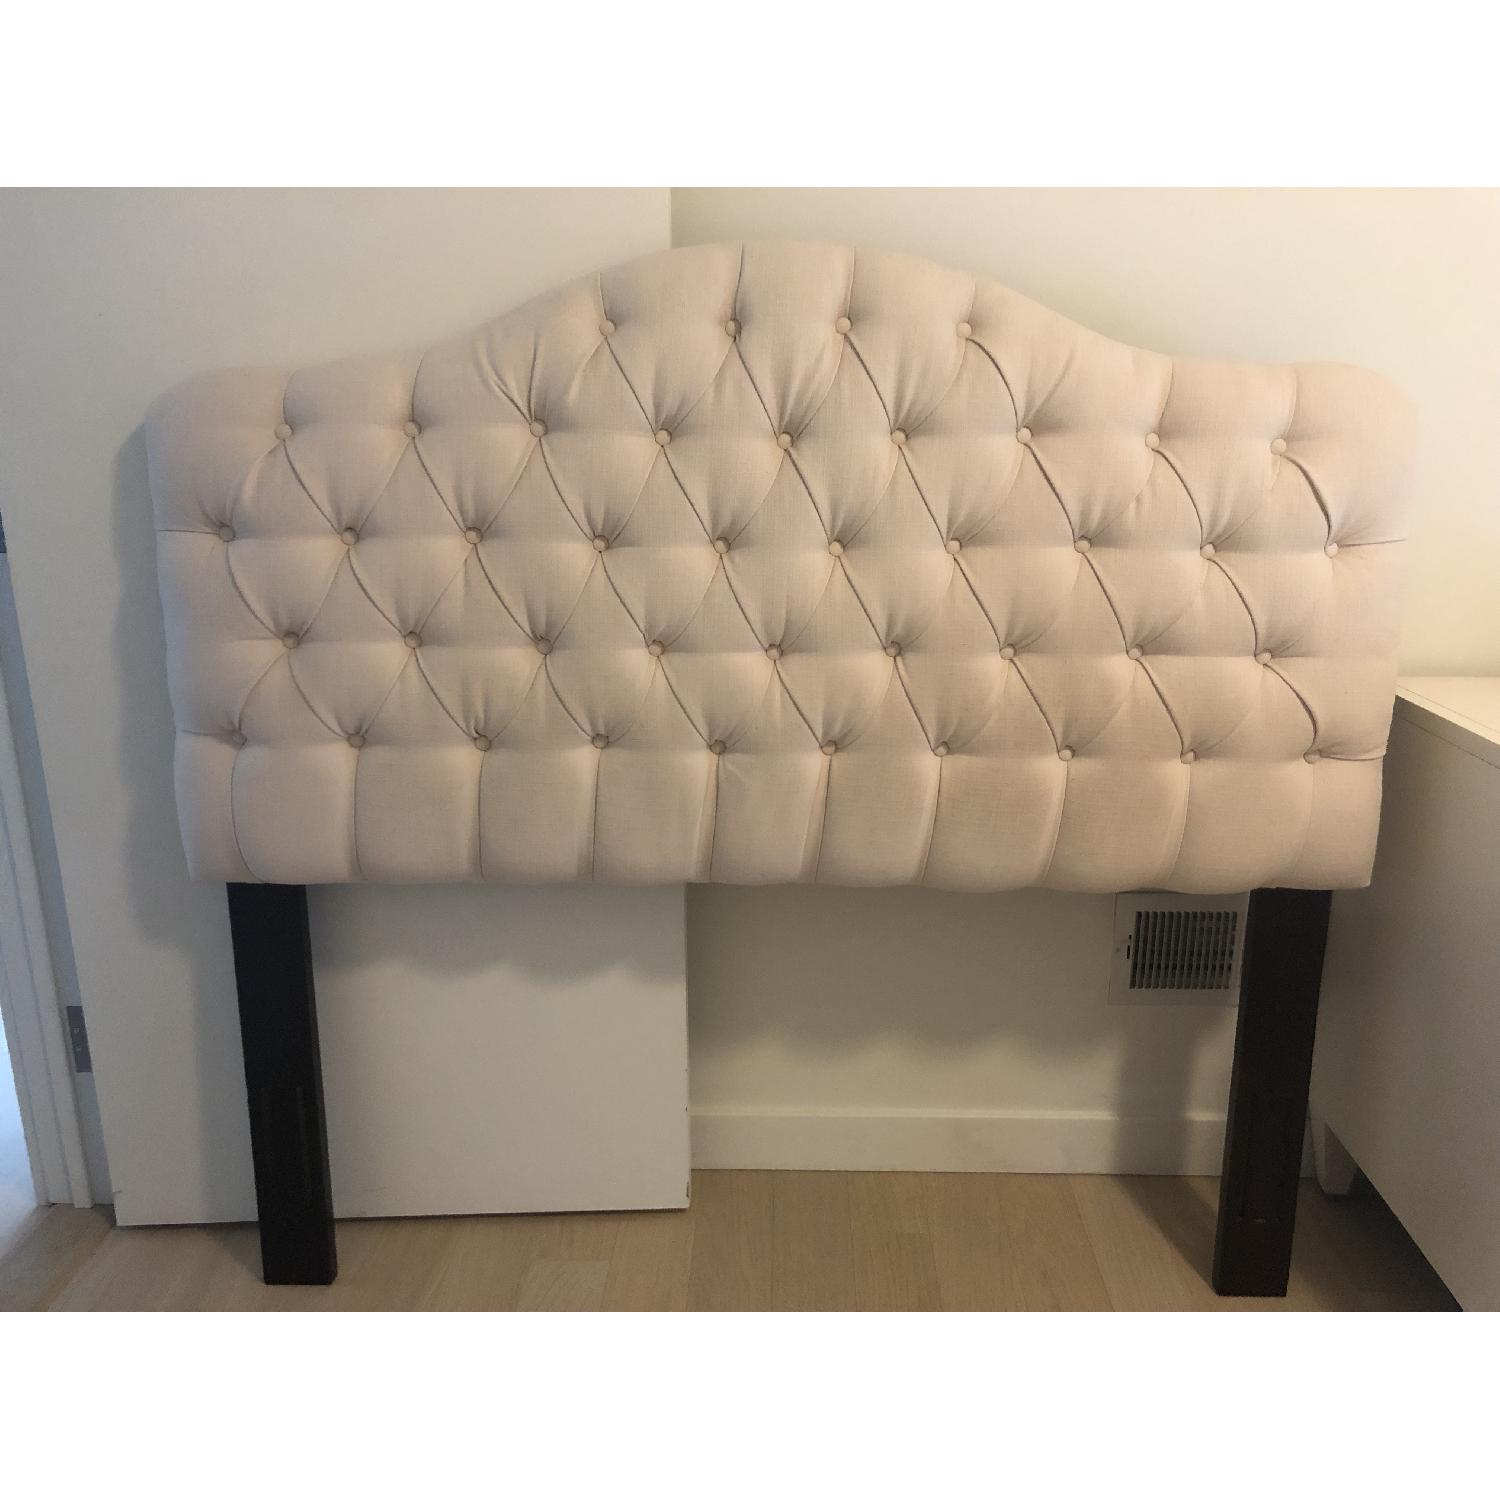 Queen Sized Tufted Headboard - image-1